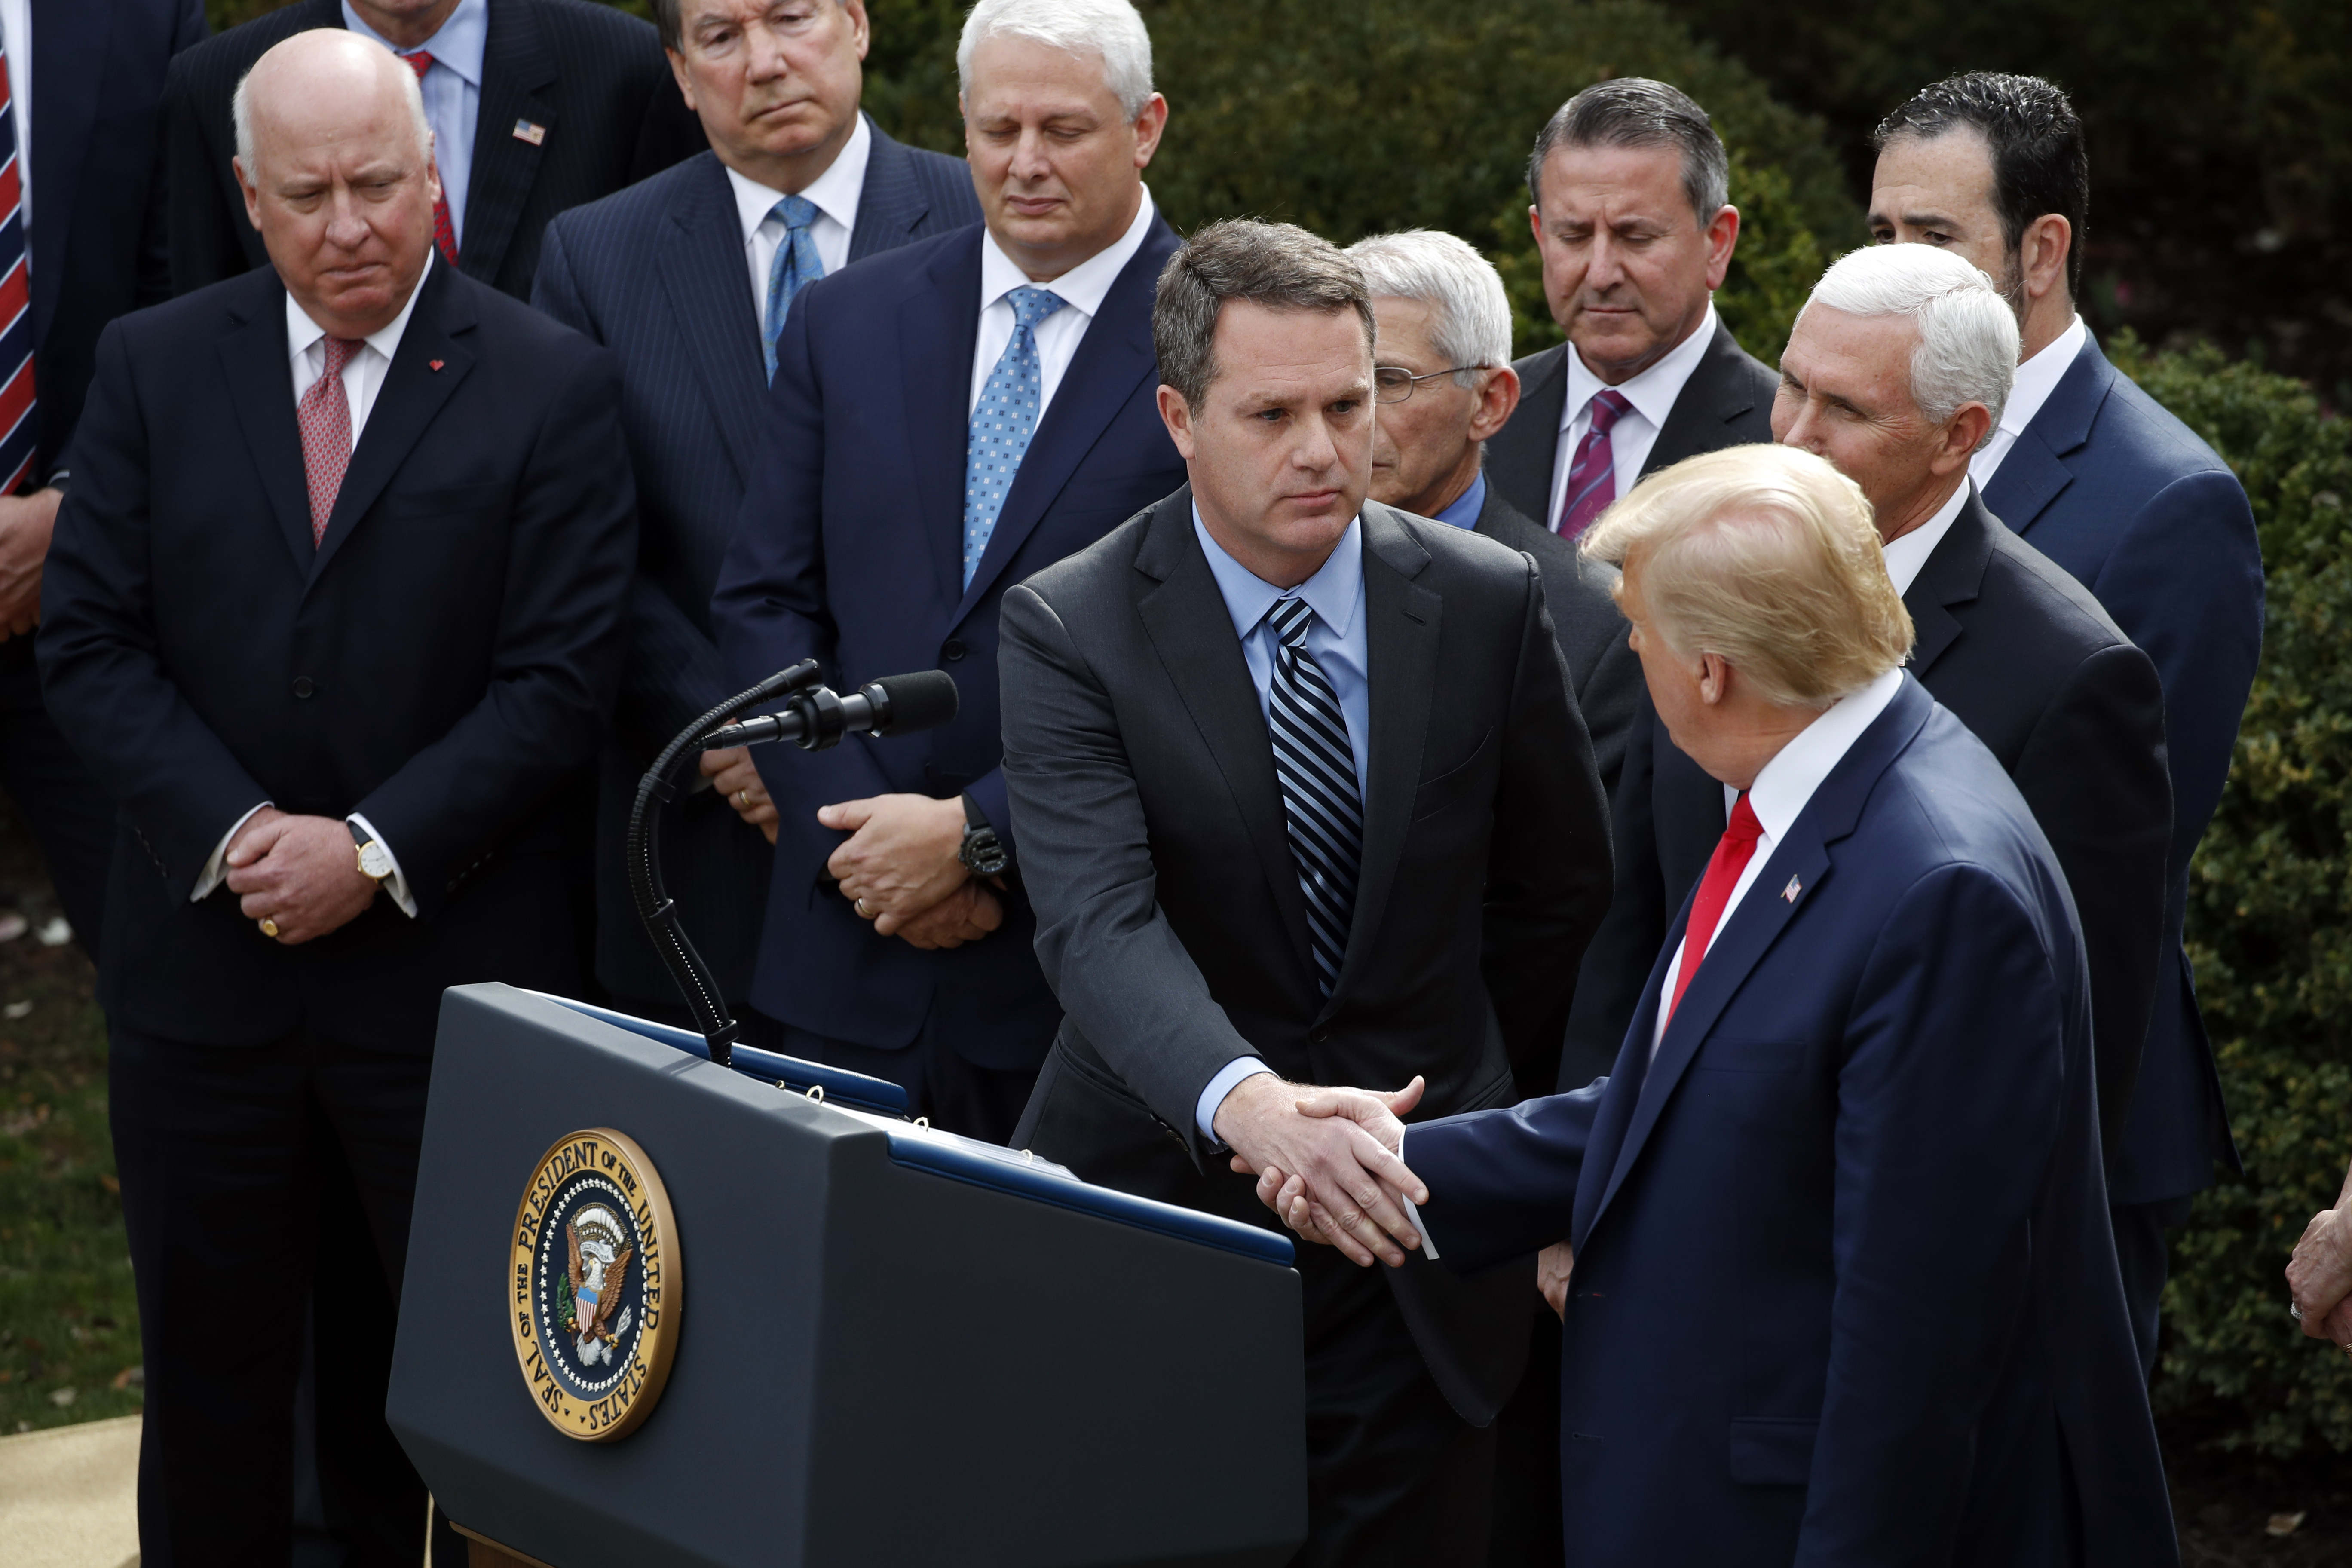 President Donald Trump shakes hands with Doug McMillon, president and CEO of Walmart Inc., during a news conference about the coronavirus in the Rose Garden at the White House on March 13, 2020, in Washington. (Alex Brandon/AP)